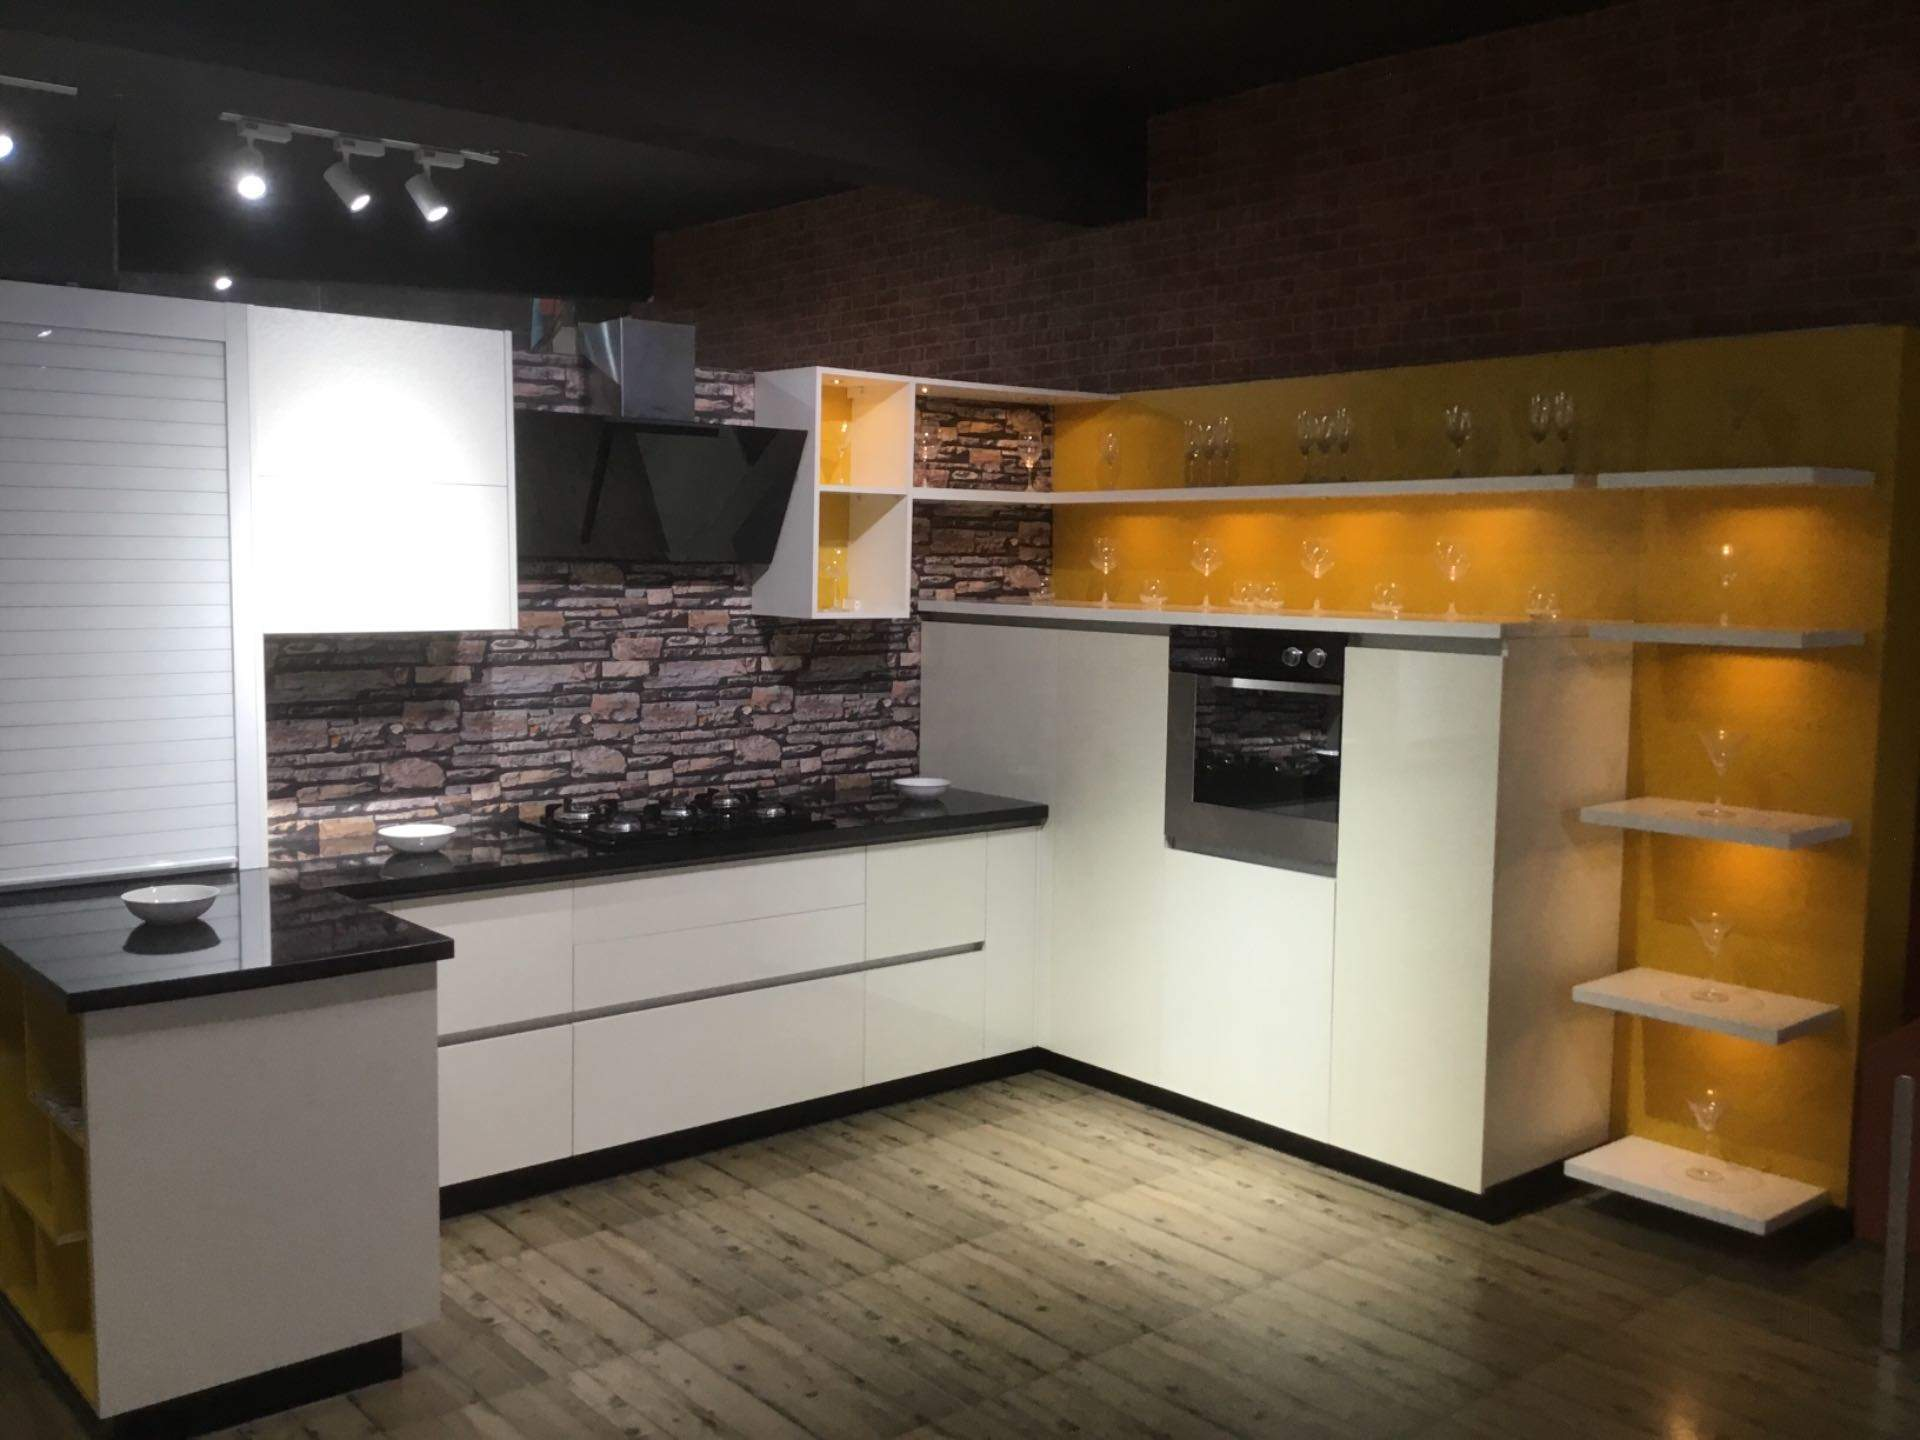 Top 50 Veneta Cucine Modular Kitchen Dealers in Rohini - Best Veneta ...